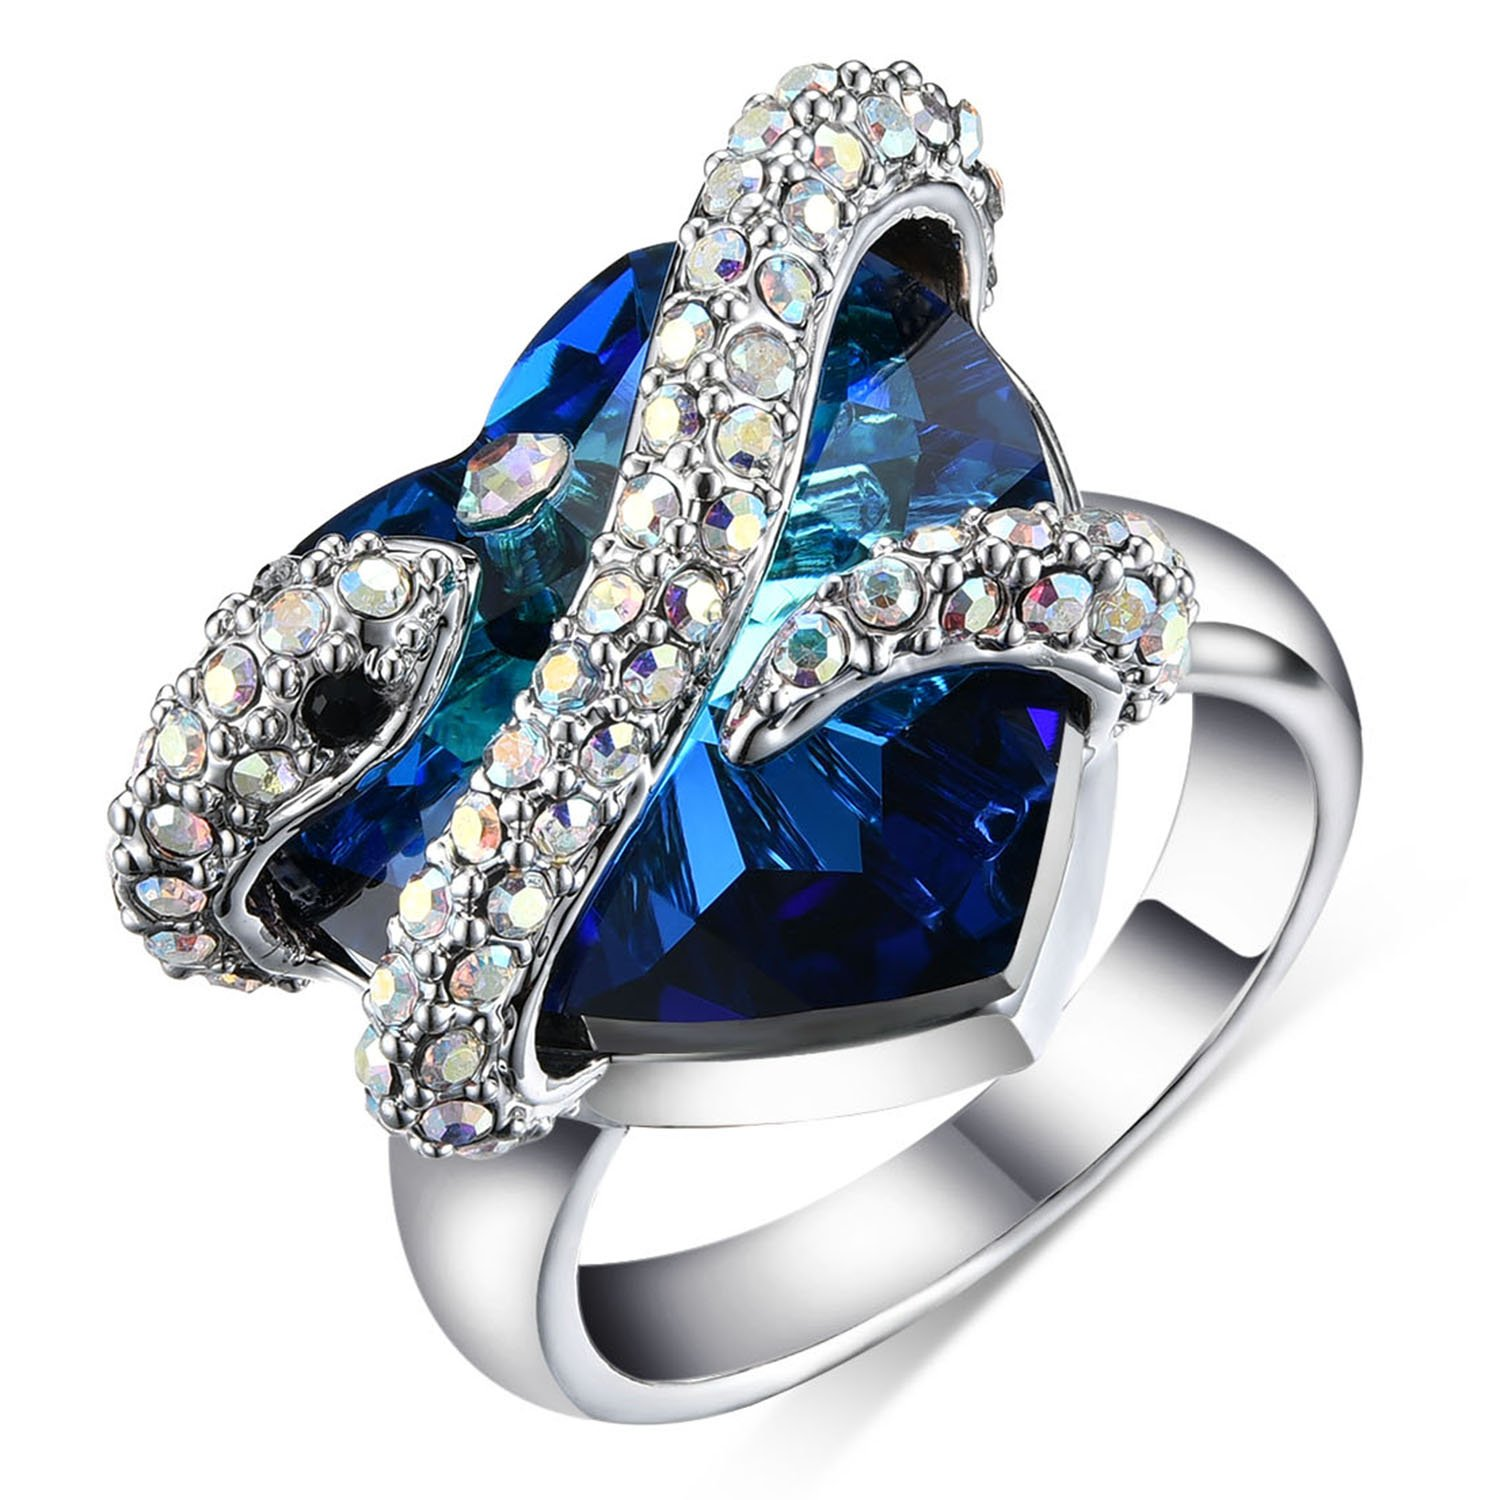 4808cc80f8ce Get Quotations · sedmart Snake Love Heart Crystal Ring 2017 New Design  White Gold Animal Promise Rhinestone Ring with